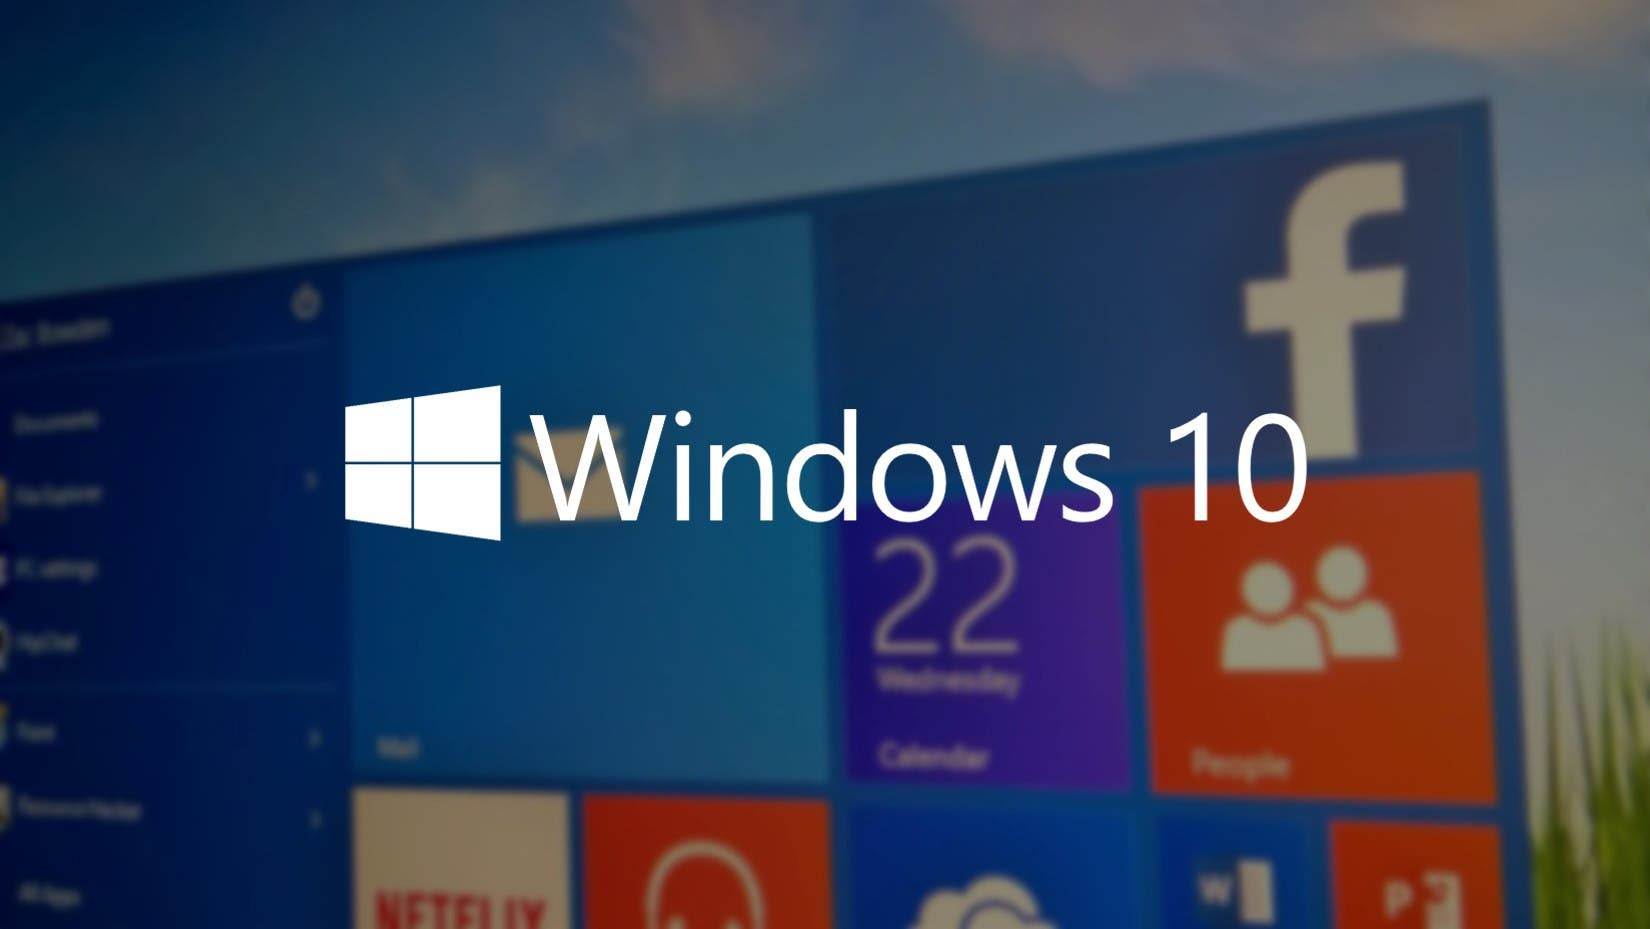 Windows 10 News Thumb